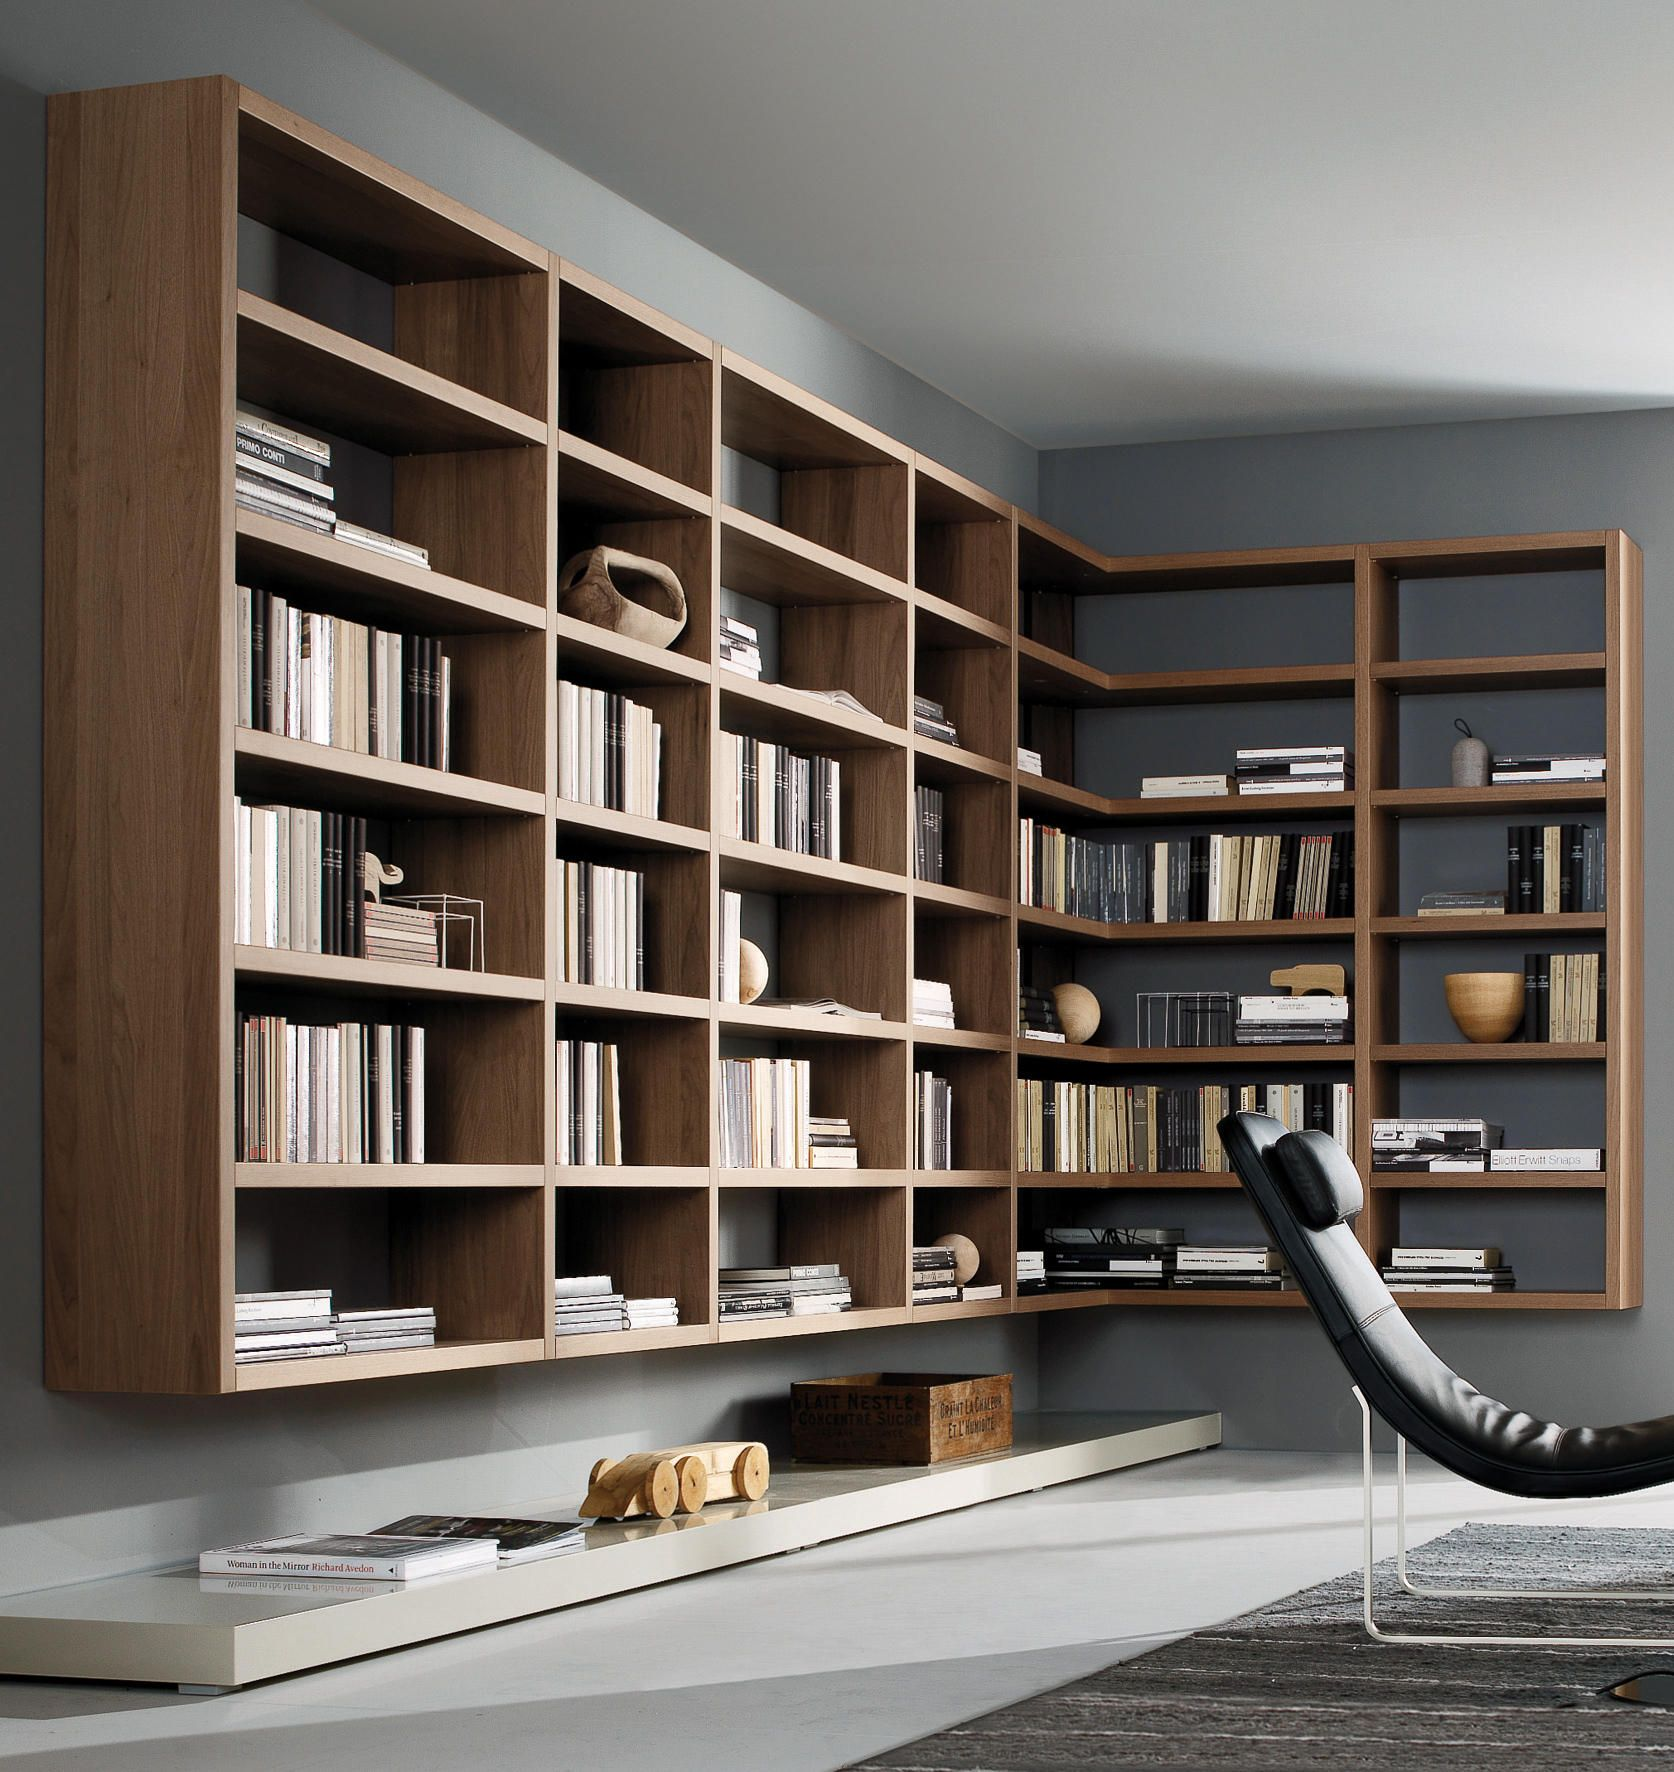 Crossing  Shelving From Misura Emme - Architonic Bookshelf Ideas